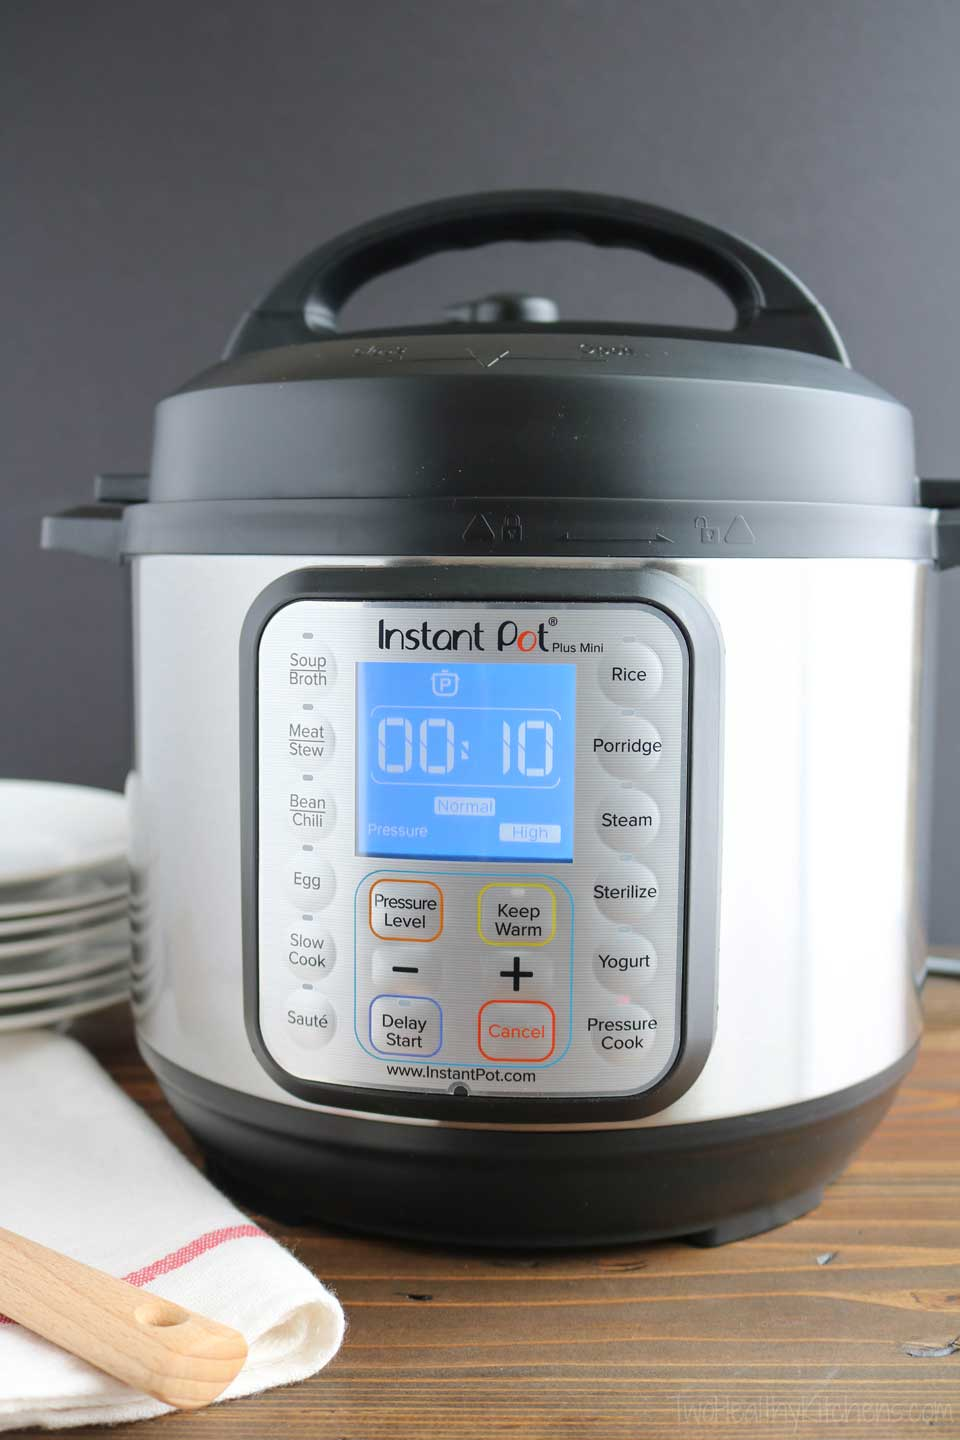 Wondering just what you can cook in your Instant Pot – what works really well and what doesn't? We've got lots of ideas to help you figure out just what all you CAN do with an Instant Pot, and what types of food you can cook in an Instant Pot. Because there are lots of recipes that electric slow cookers like the Instant Pot do really well, but some they don't – and it's helpful to know the difference! | #InstantPot #pressurecooker #pressurecooking #slowcooker | www.TwoHealthyKitchens.com